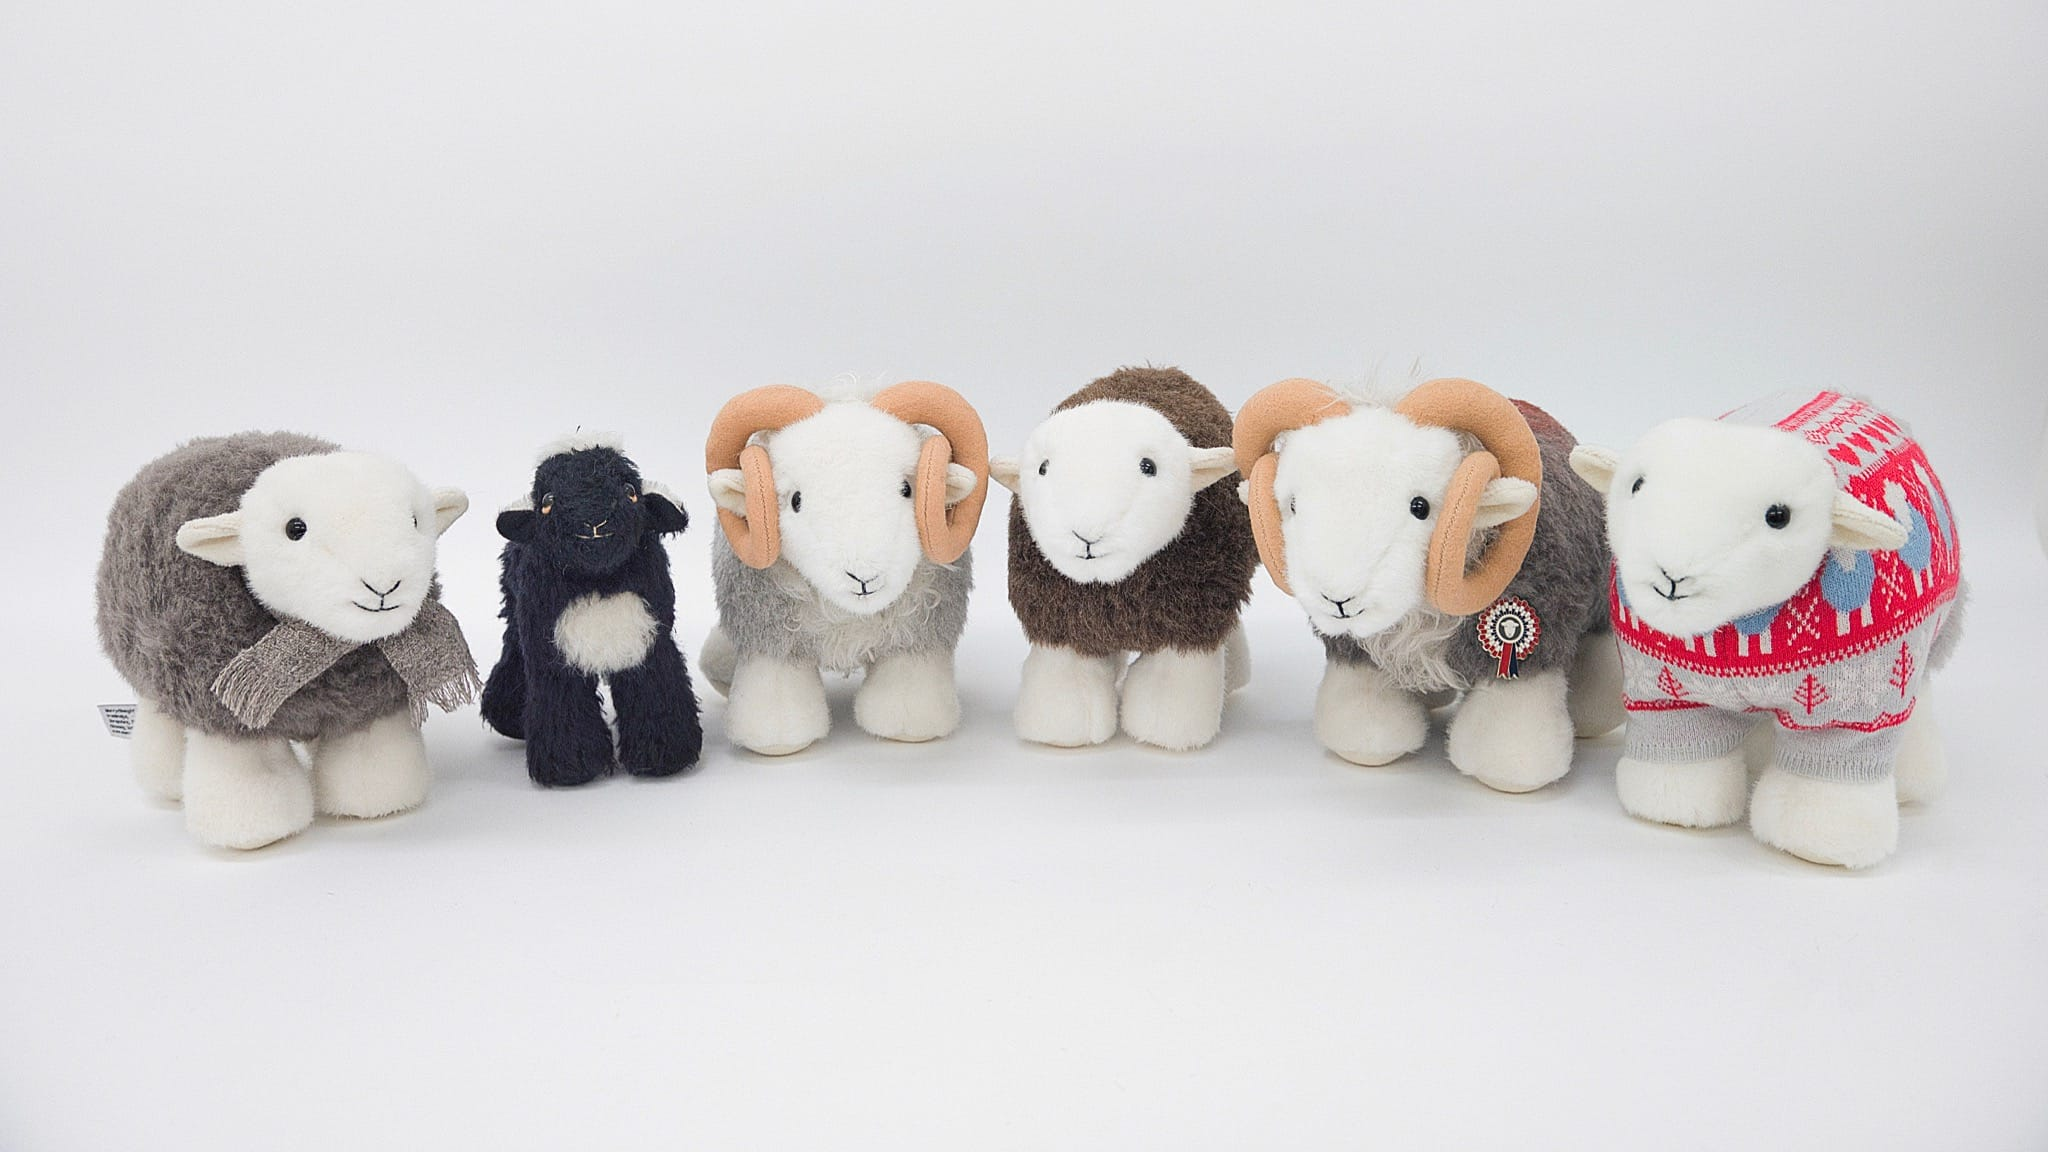 All six My Herdy and Merrythought soft toys